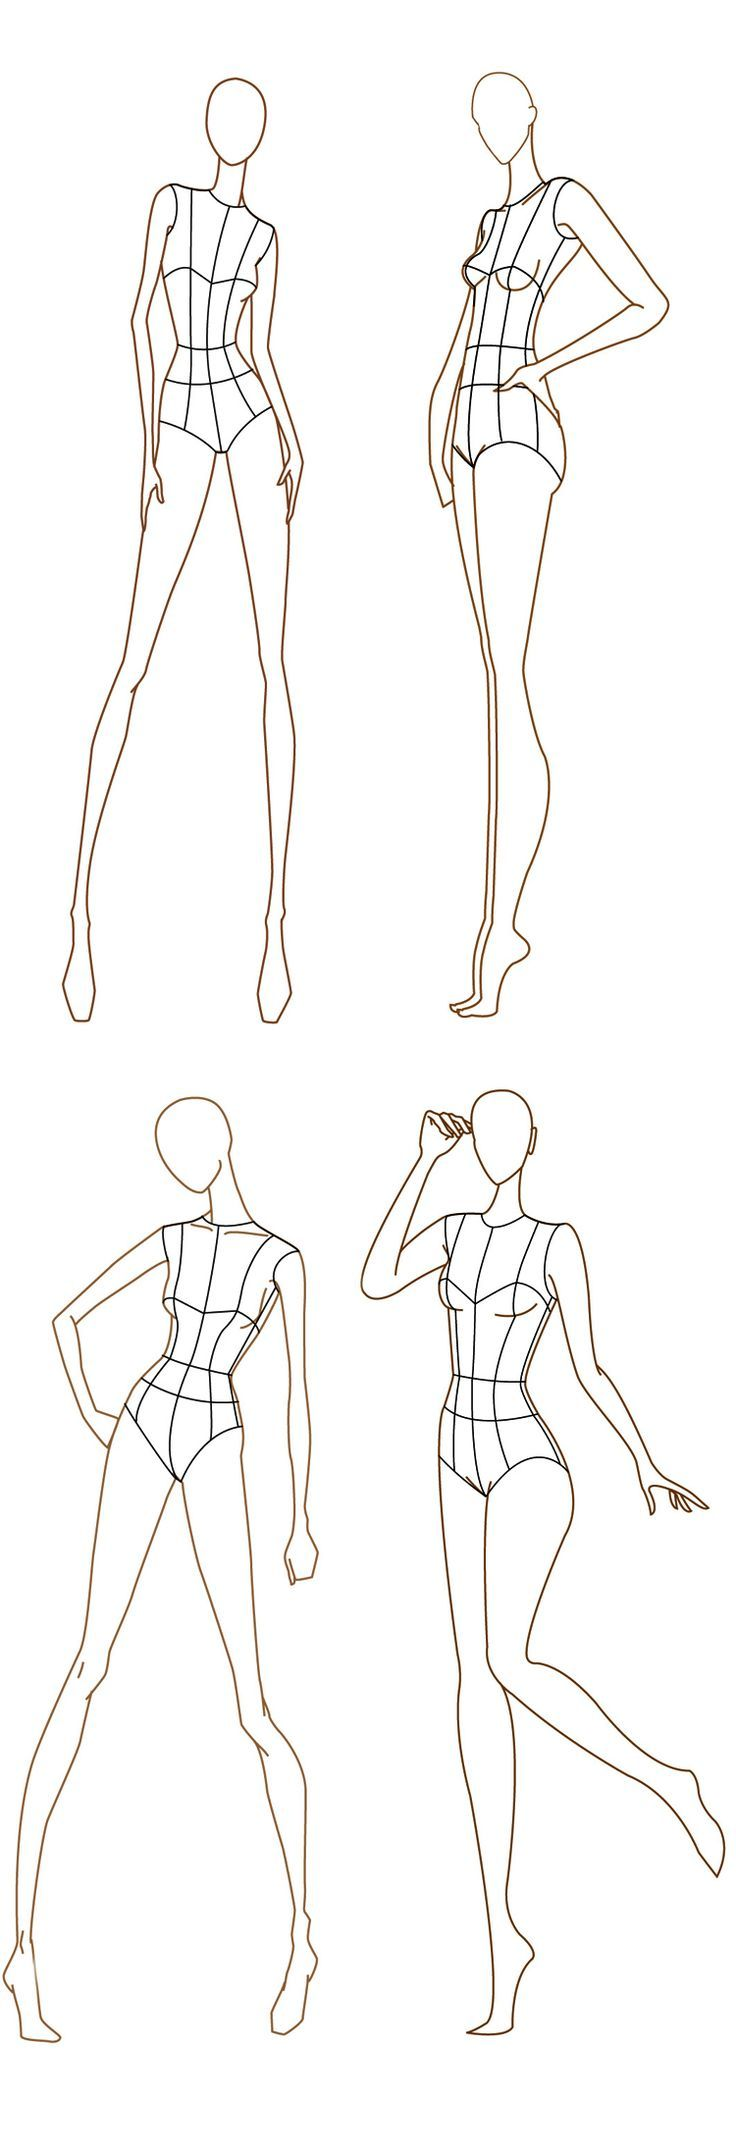 11 best Body Templates images on Pinterest | Fashion illustrations ...